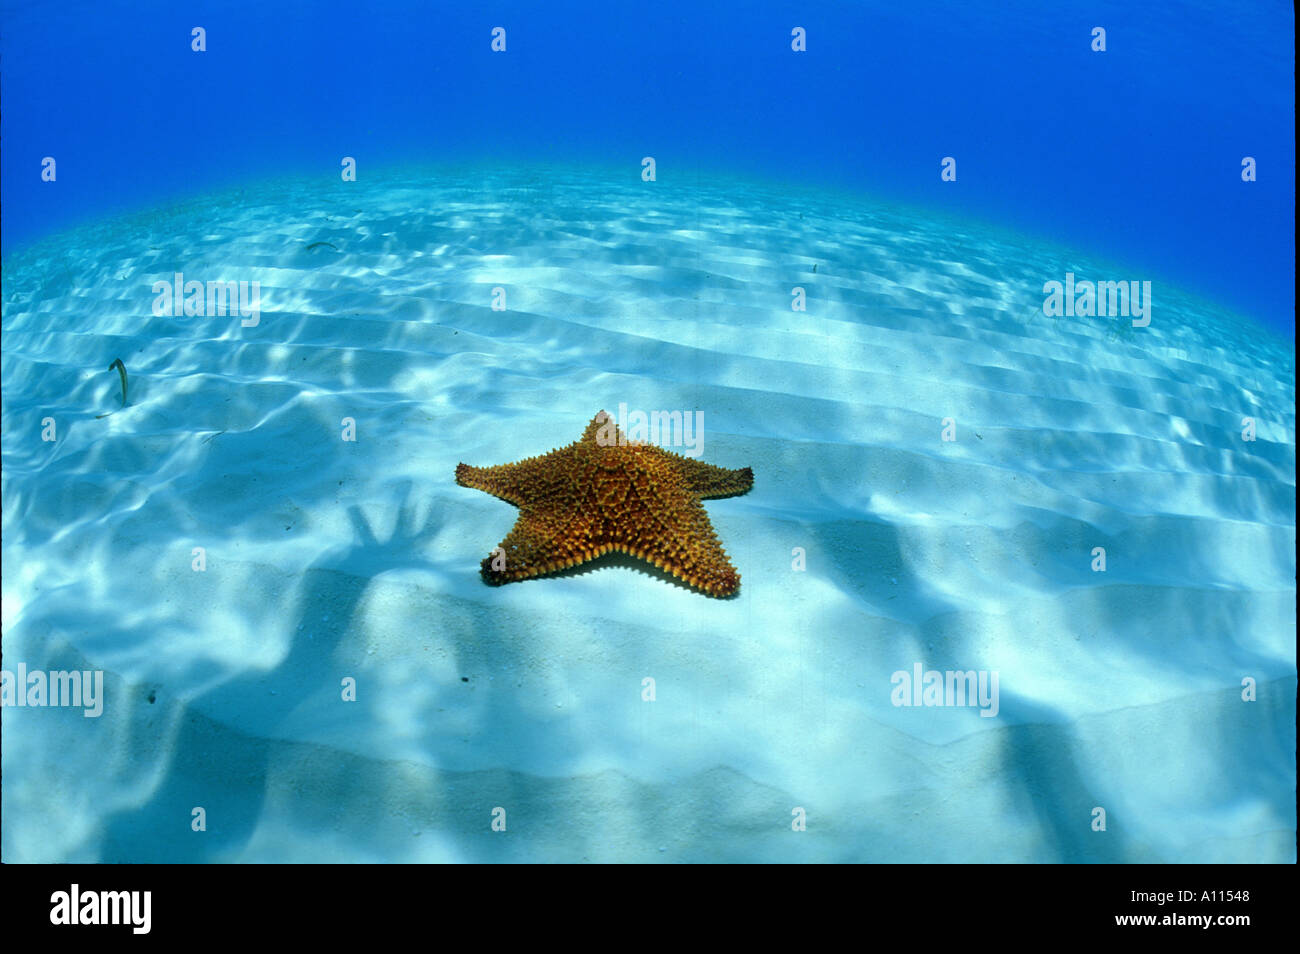 a cushion sea star or starfish in shallow ocean waters in